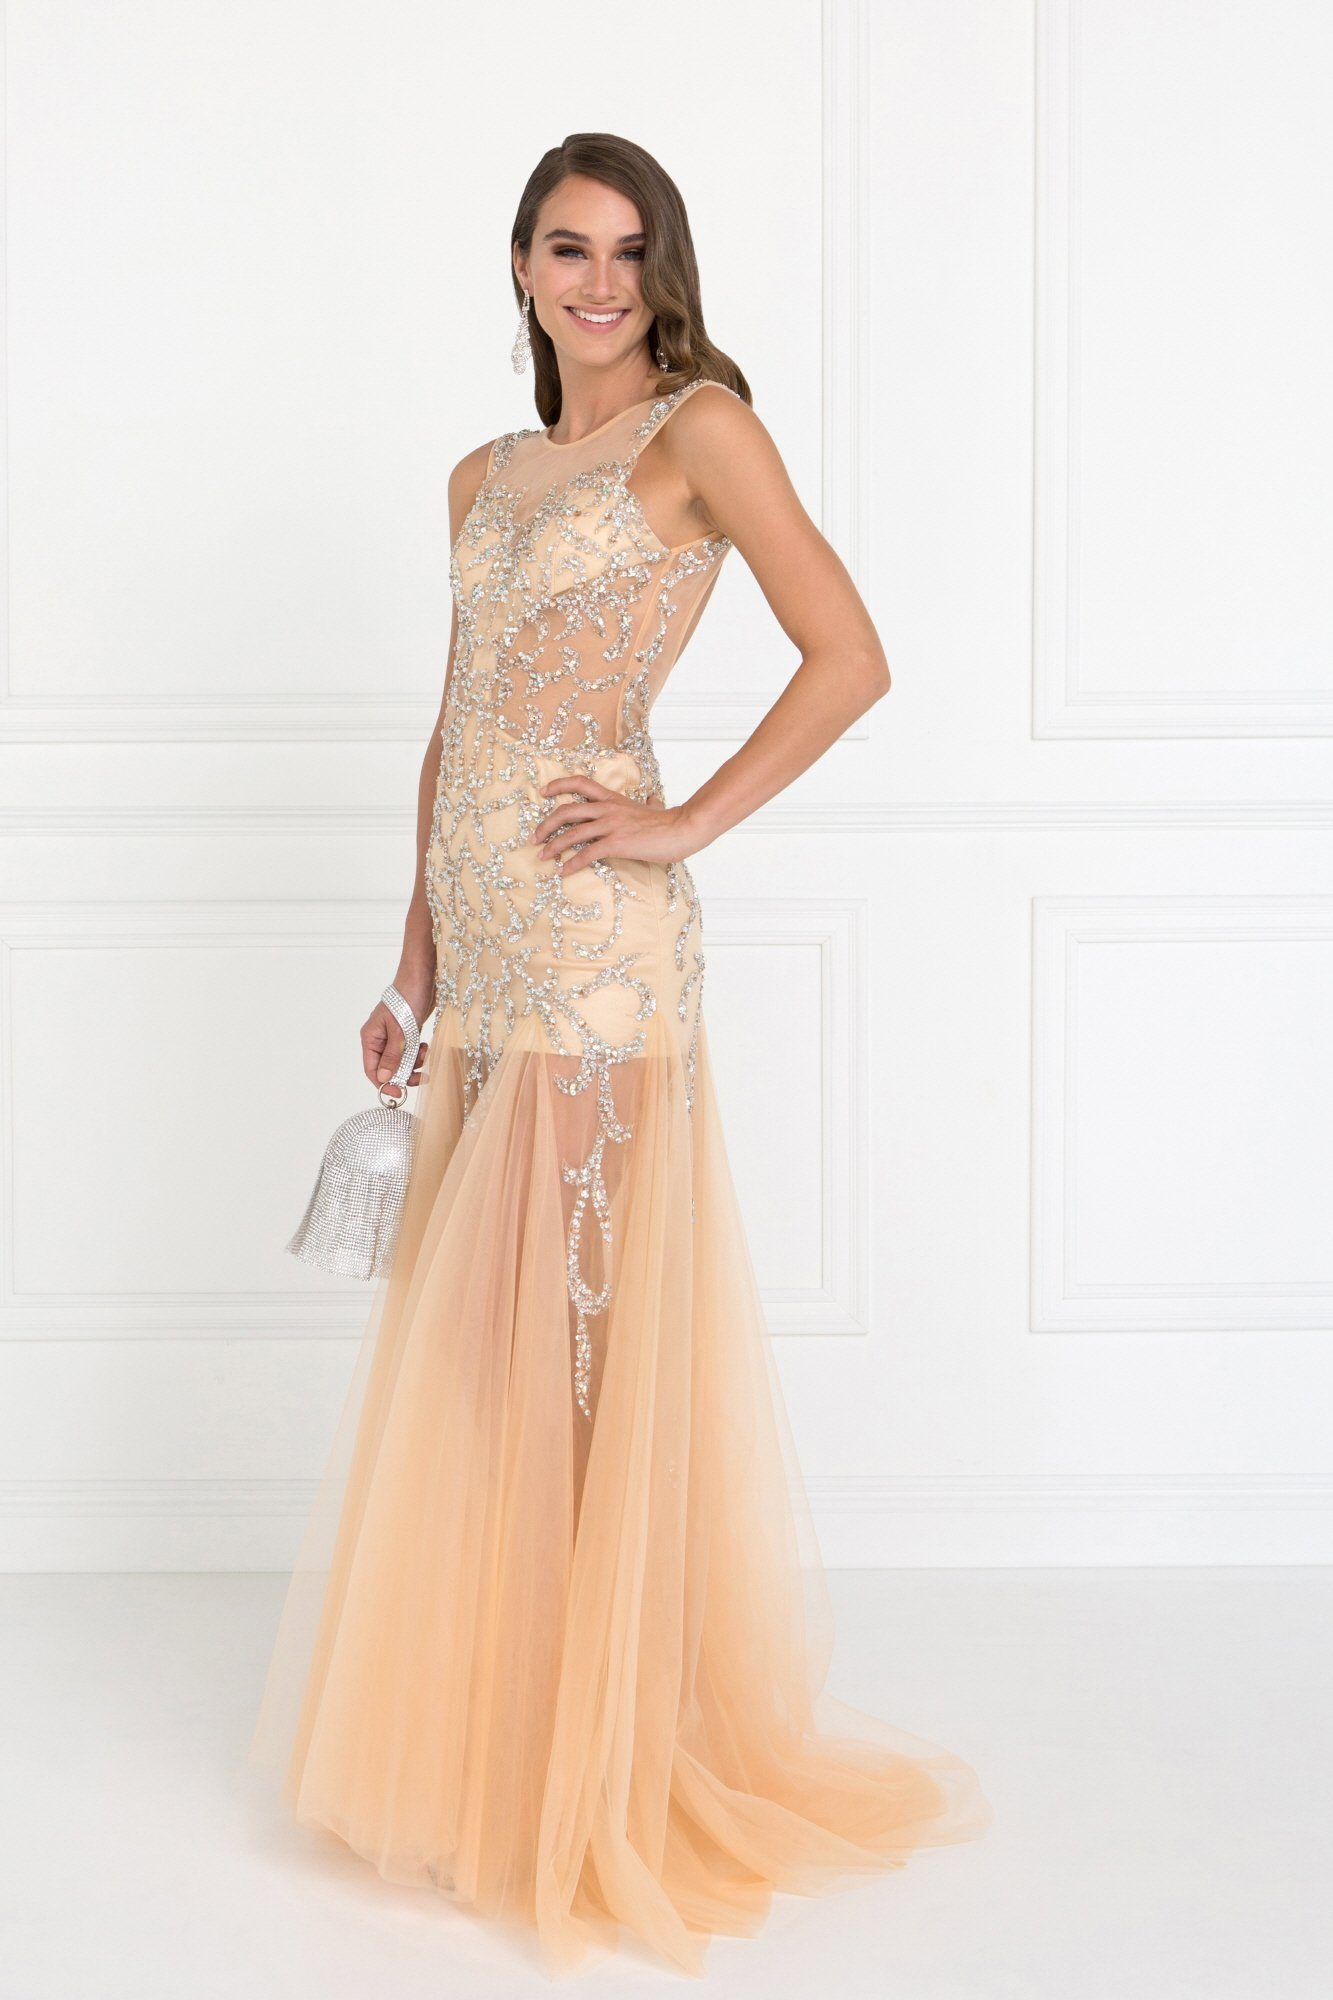 Extremely Revealing Prom Dress